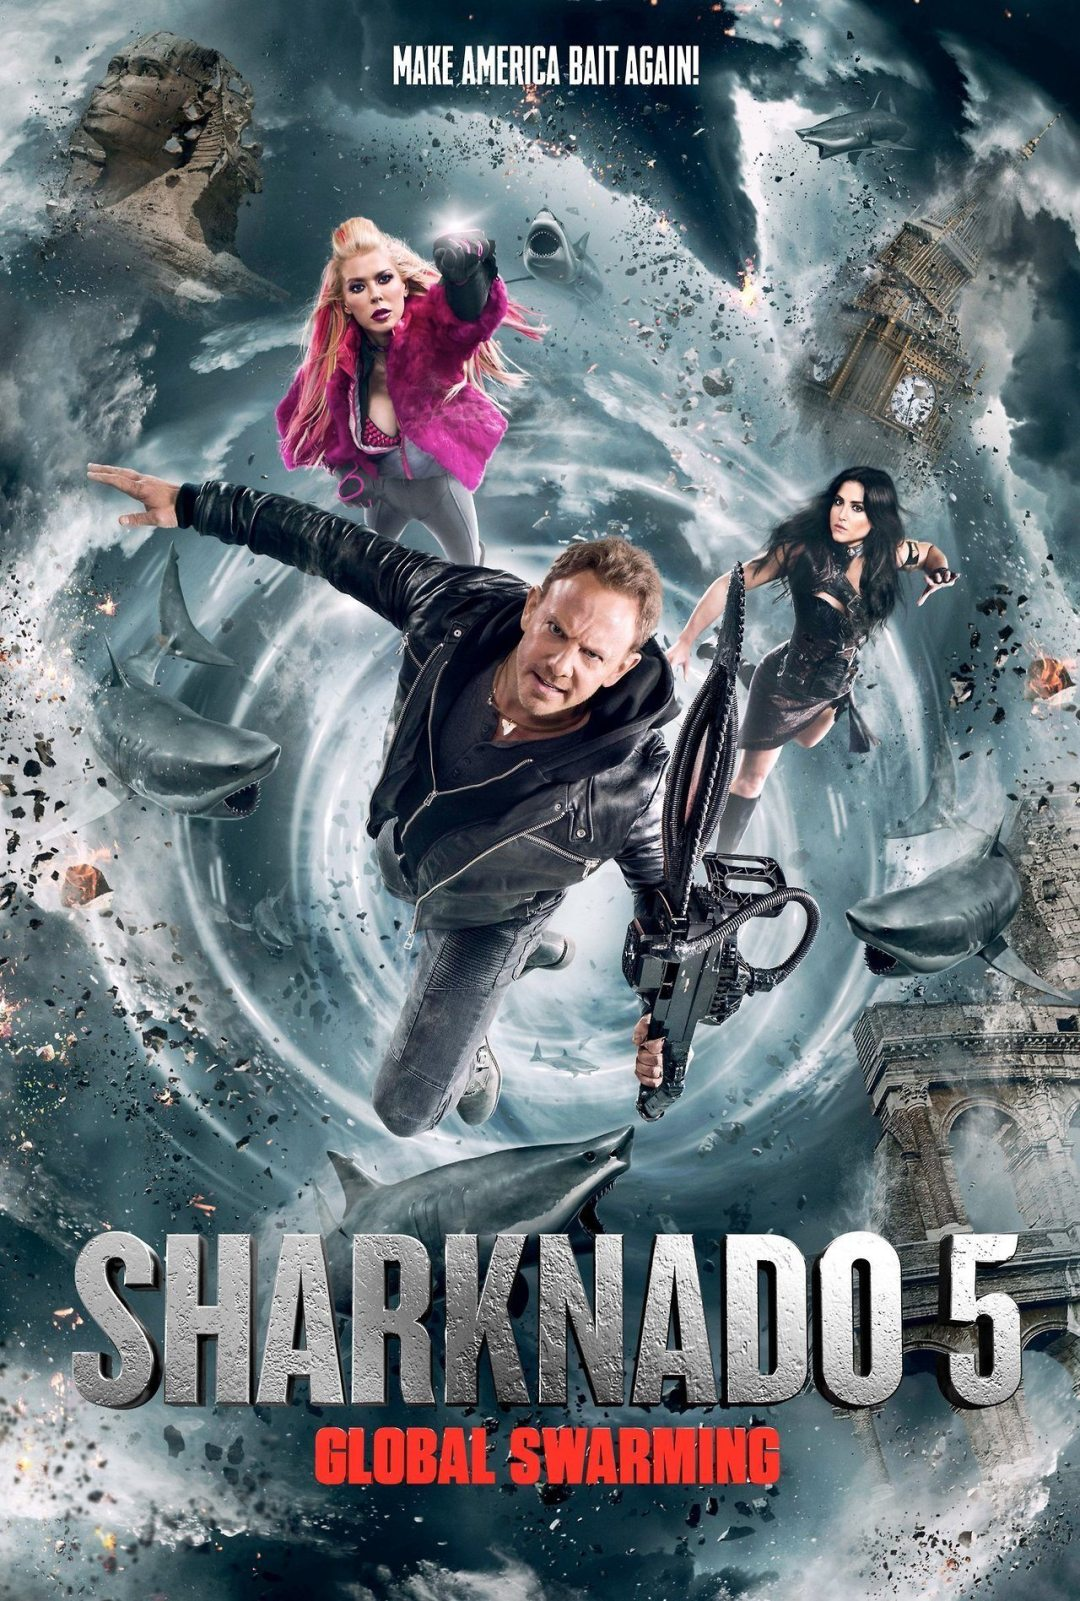 The New 'Sharknado 5' Poster Will Make America Bait Again!